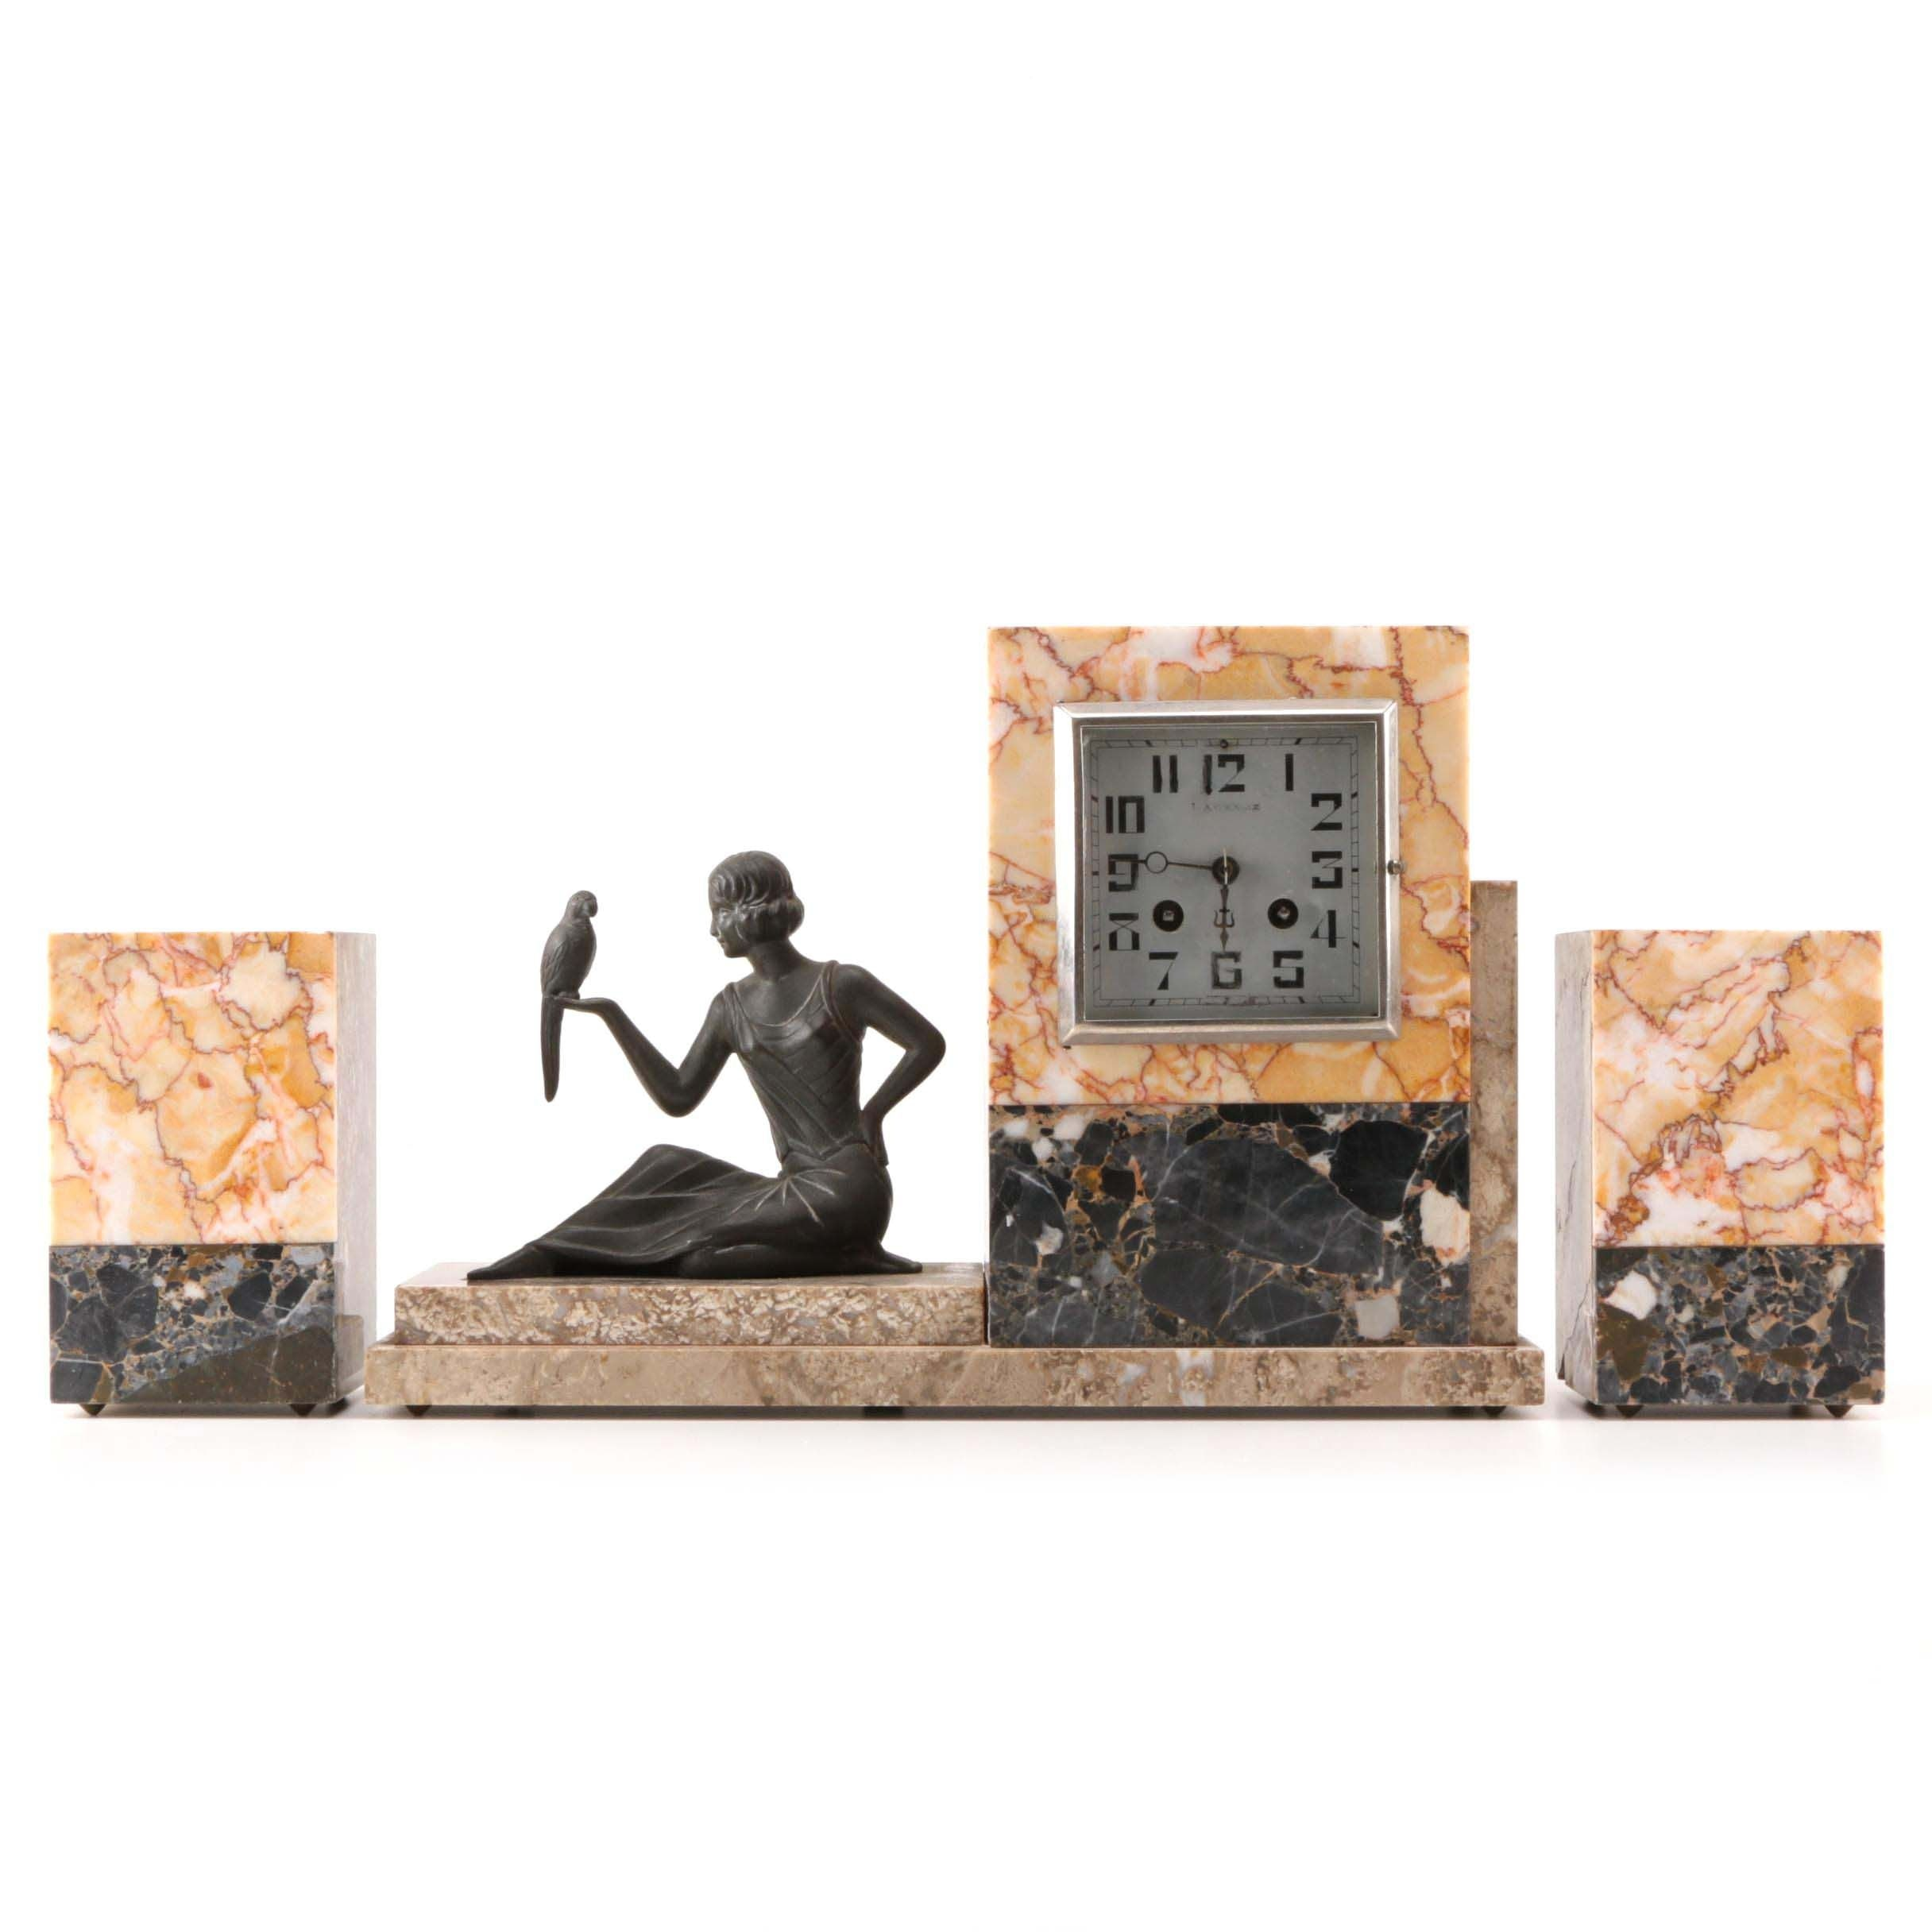 Art Deco Marble Desk Clock with Stauette and a pair of Bookends